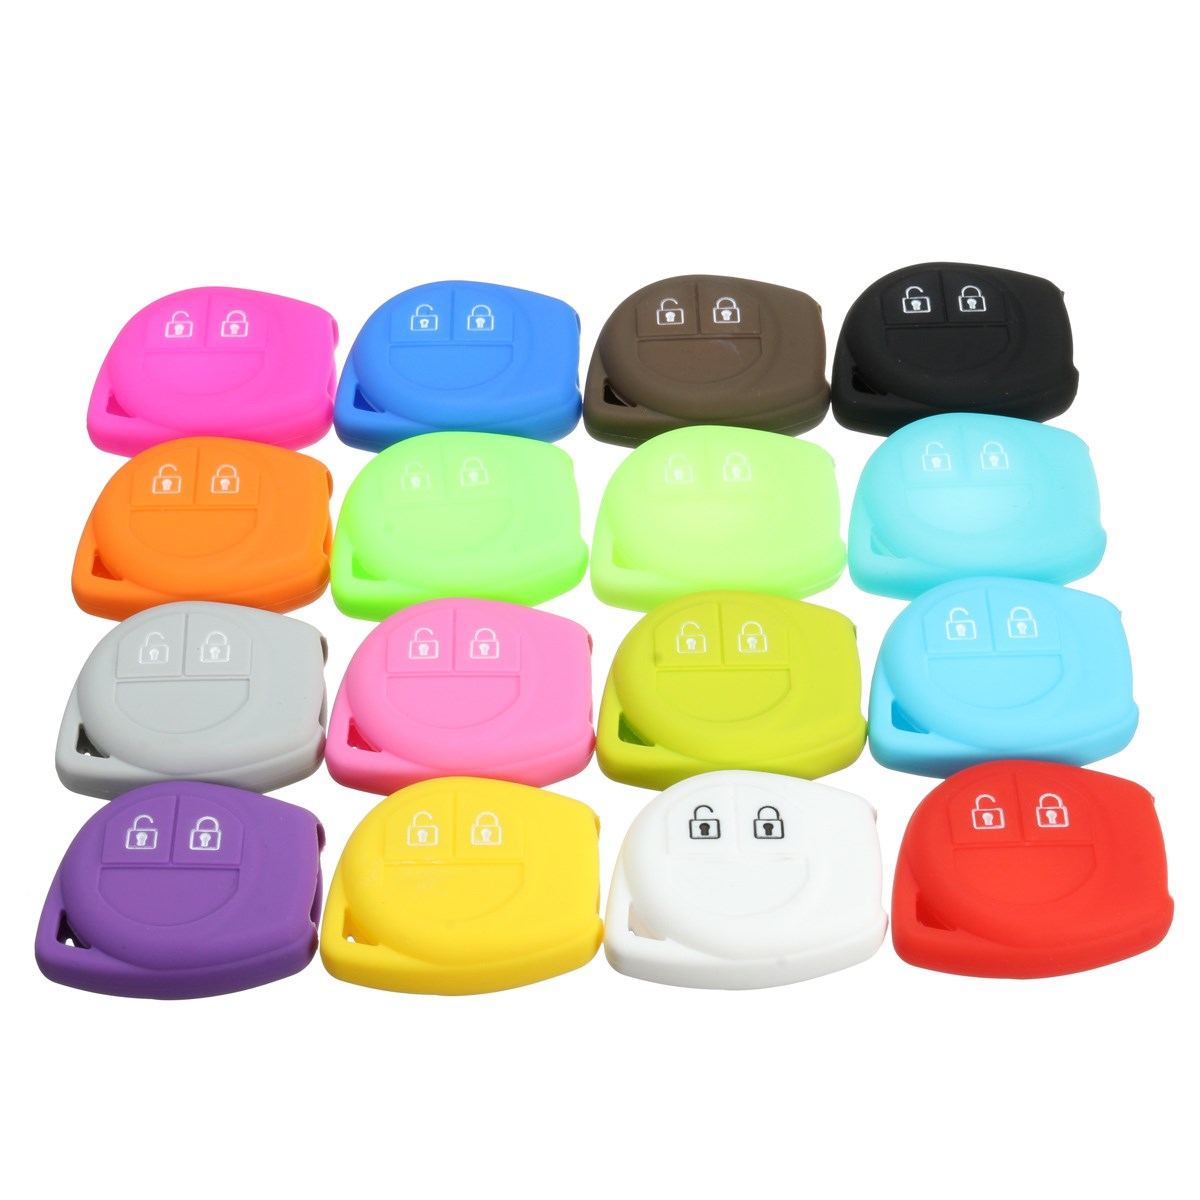 Image 2 - 16 Color Silicone 2 Button Remote Key Case Fob Protect Cover For Suzuki /SX4 /Swift /Vitara-in Key Case for Car from Automobiles & Motorcycles